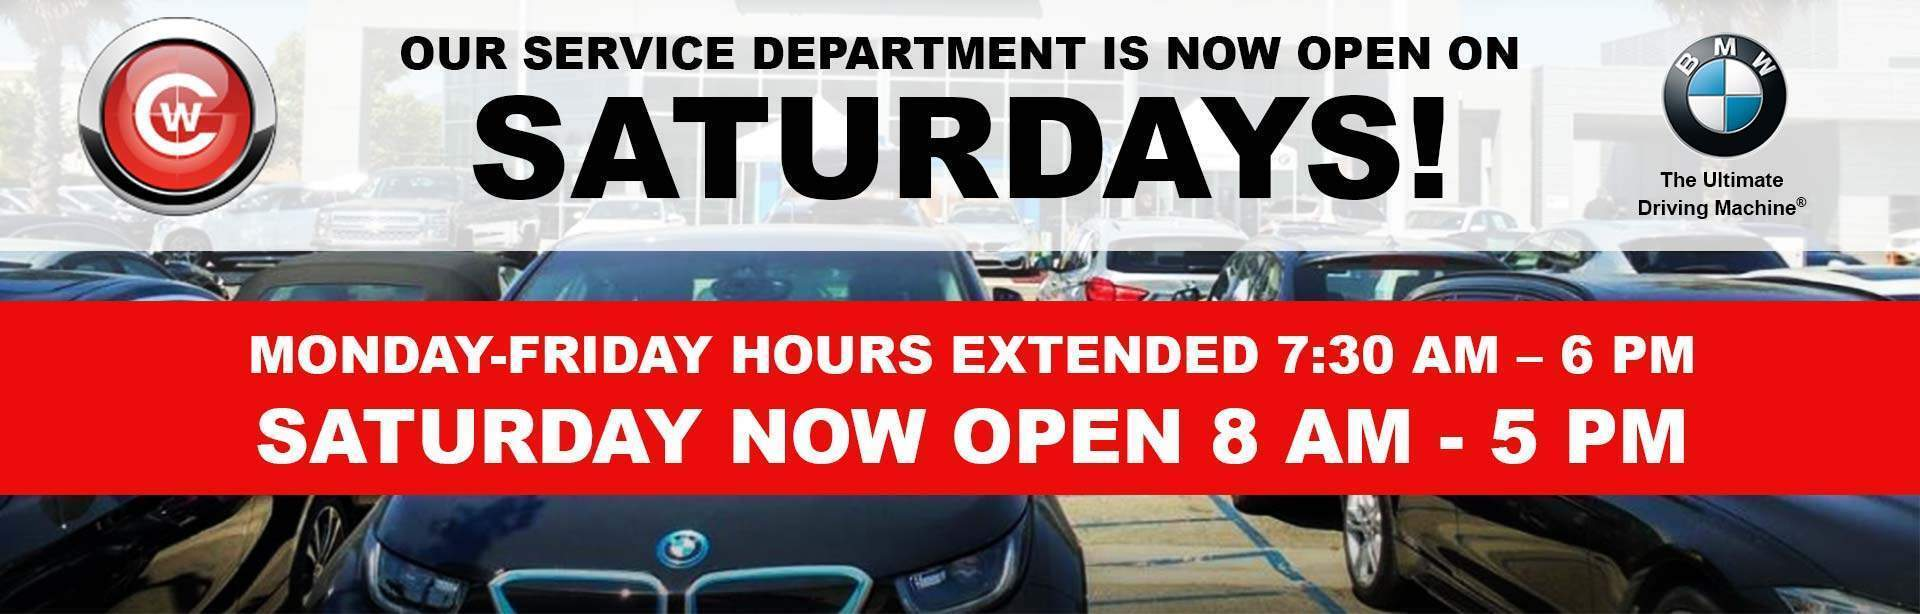 Service Open Saturdays